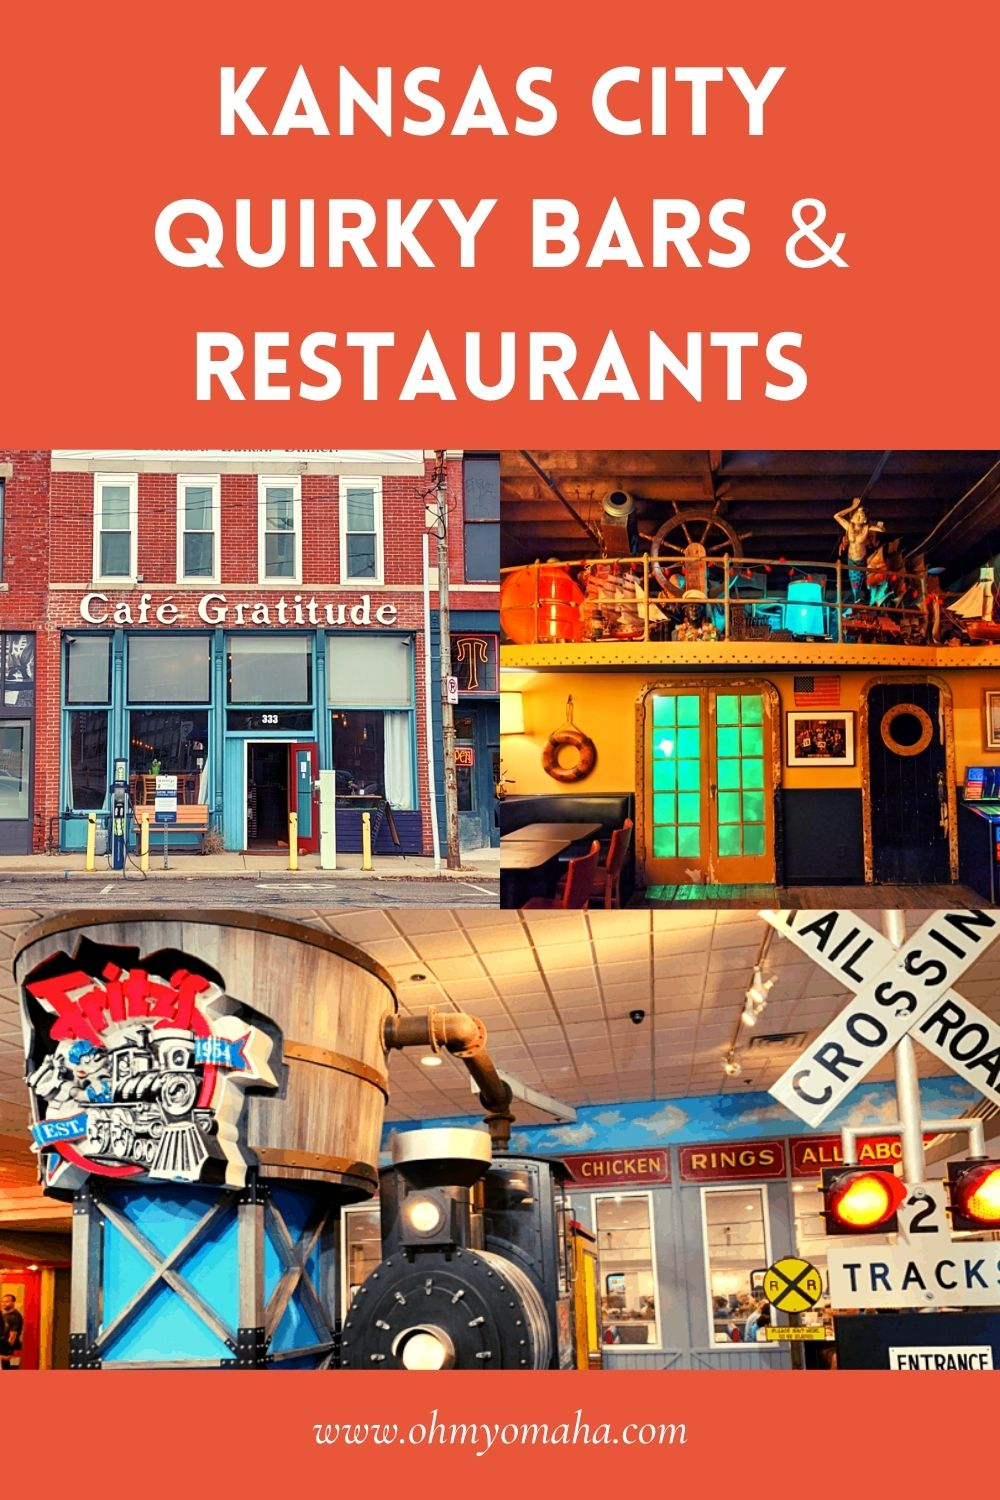 11 quirky bars and truly unique restaurants in Kansas City, Missouri!